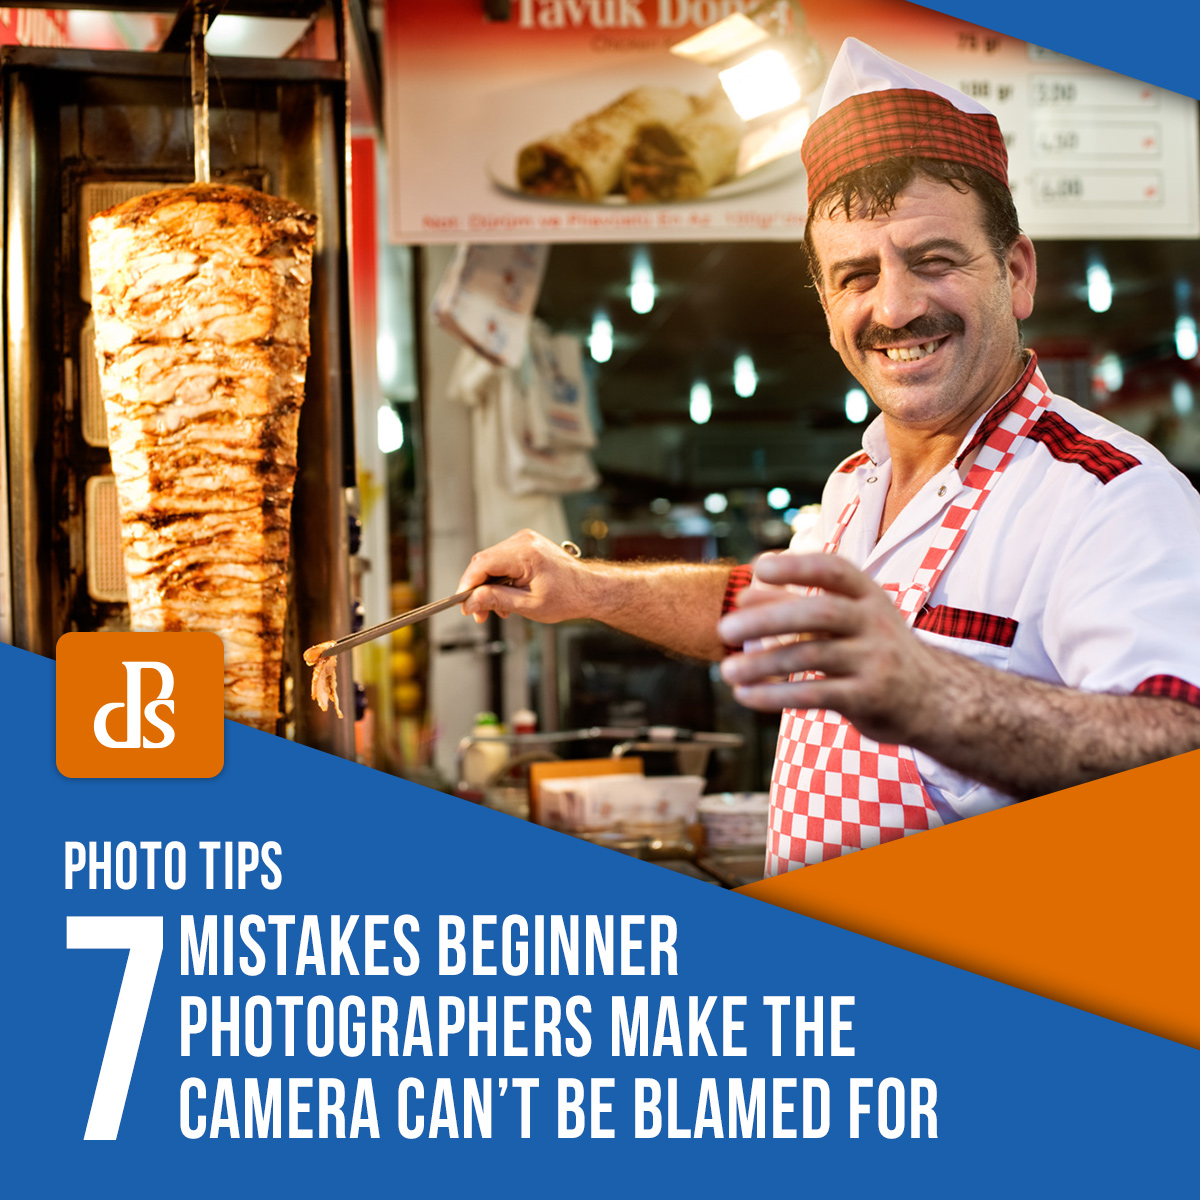 7 Mistakes Beginner Photographers Make The Camera Can't Be Blamed For